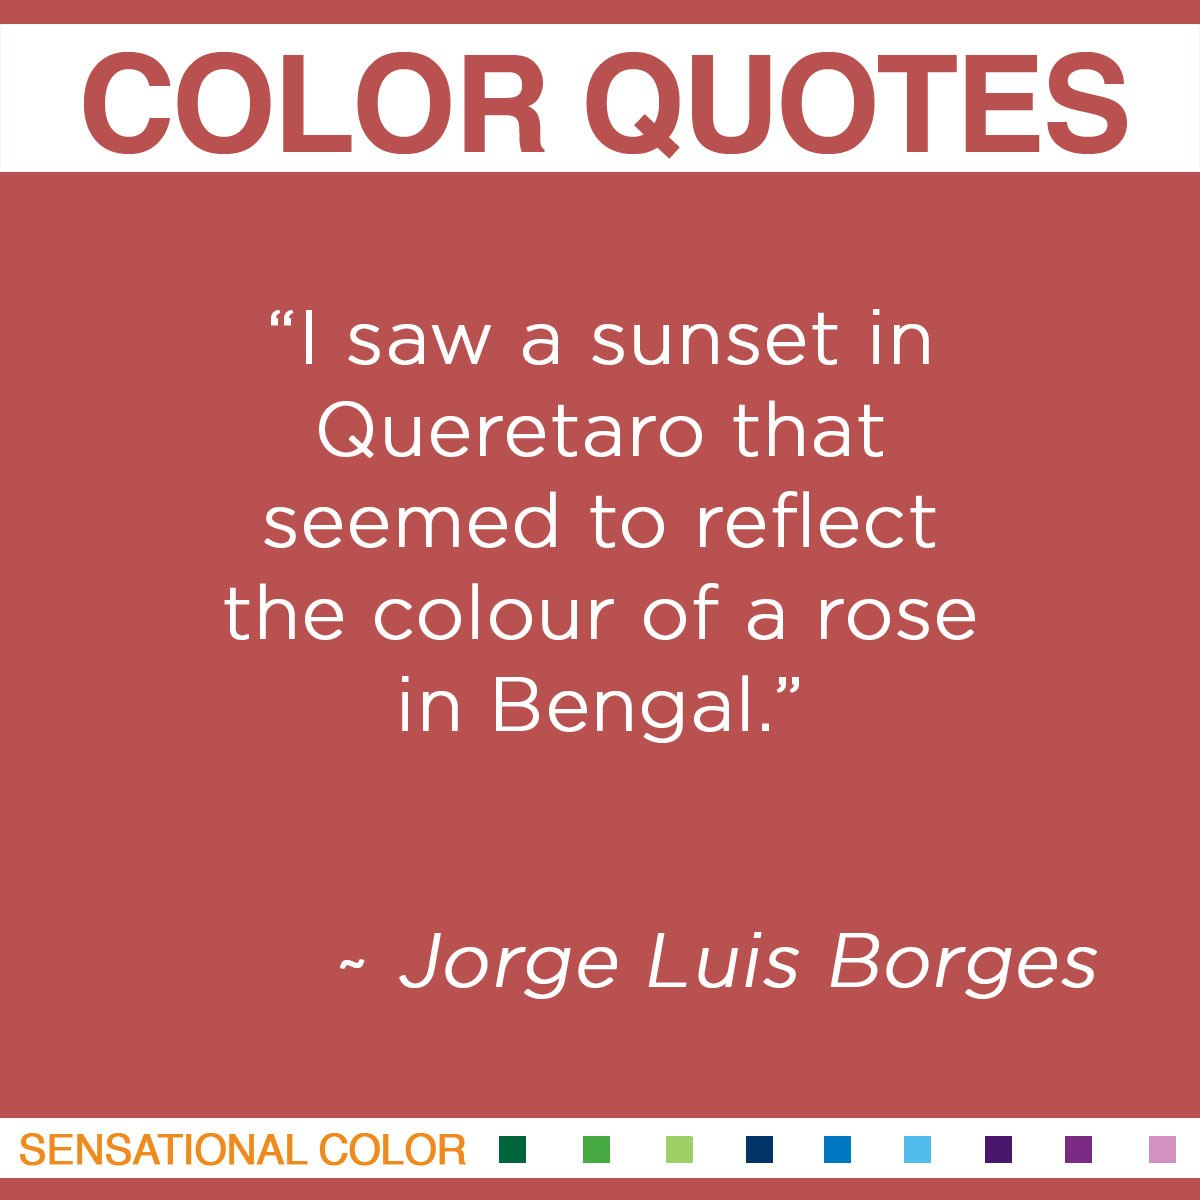 """I saw a sunset in Queretaro that seemed to reflect the colour of a rose in Bengal."" -  Jorge Luis Borges"